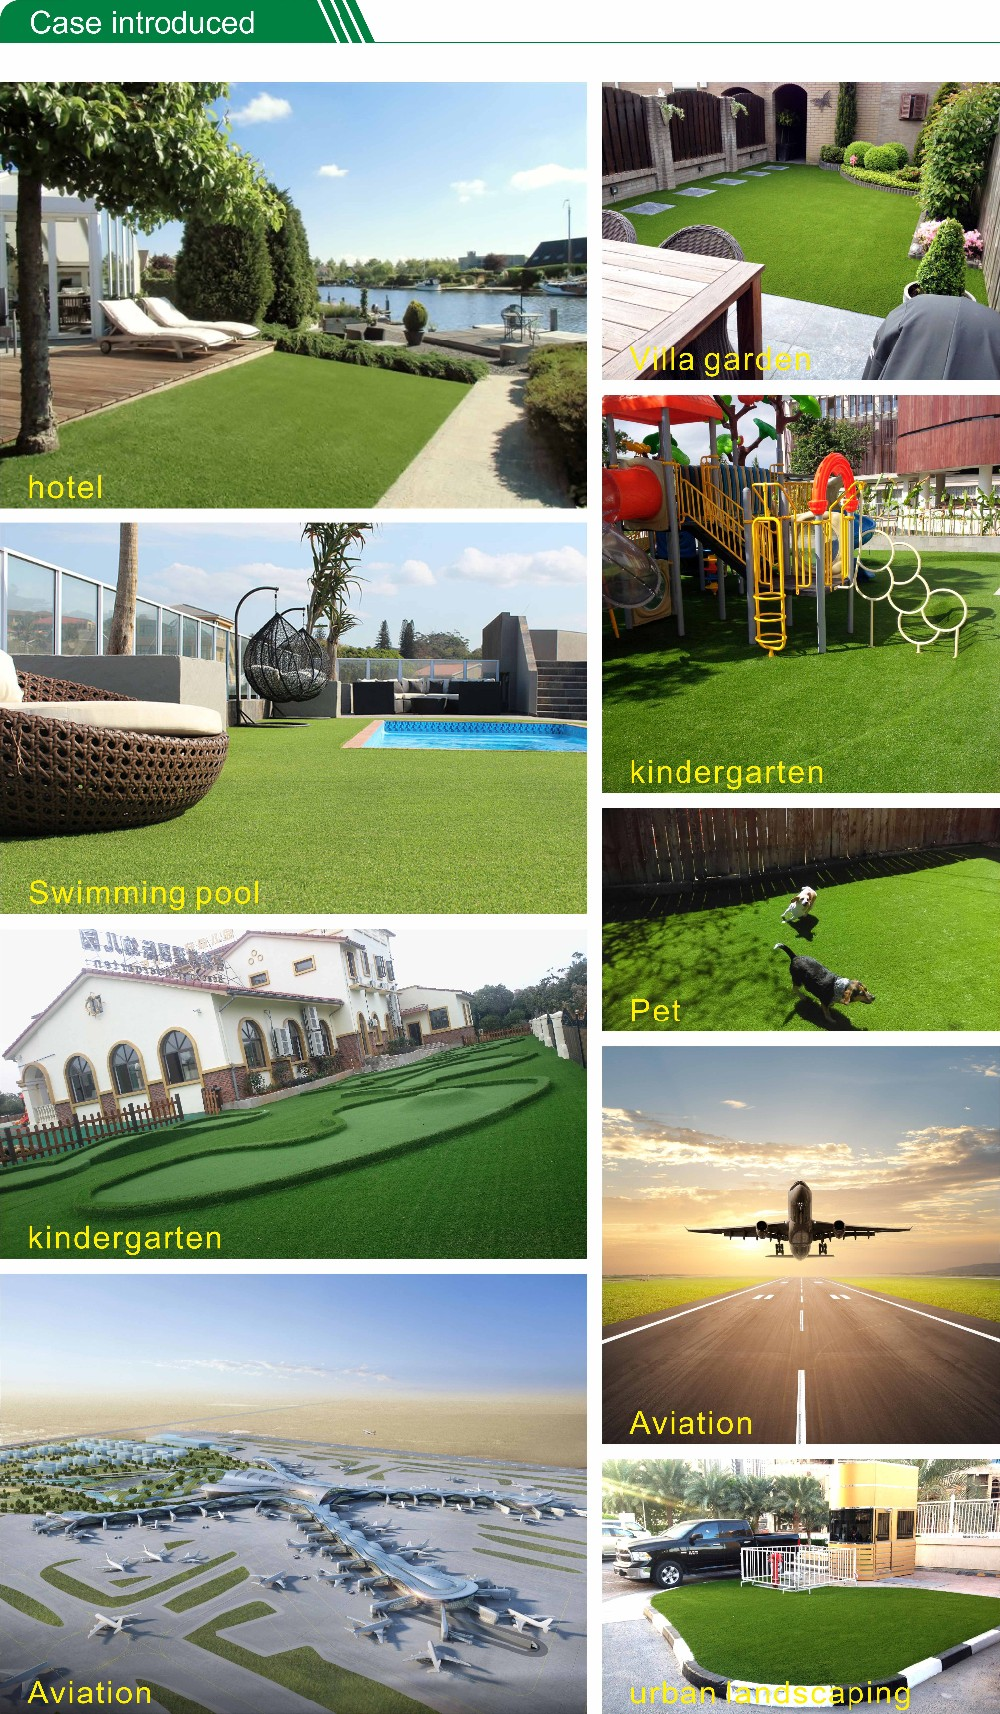 Commercial High Density Artificial Grass Synthetic Grass For Childcare Artificial Turf